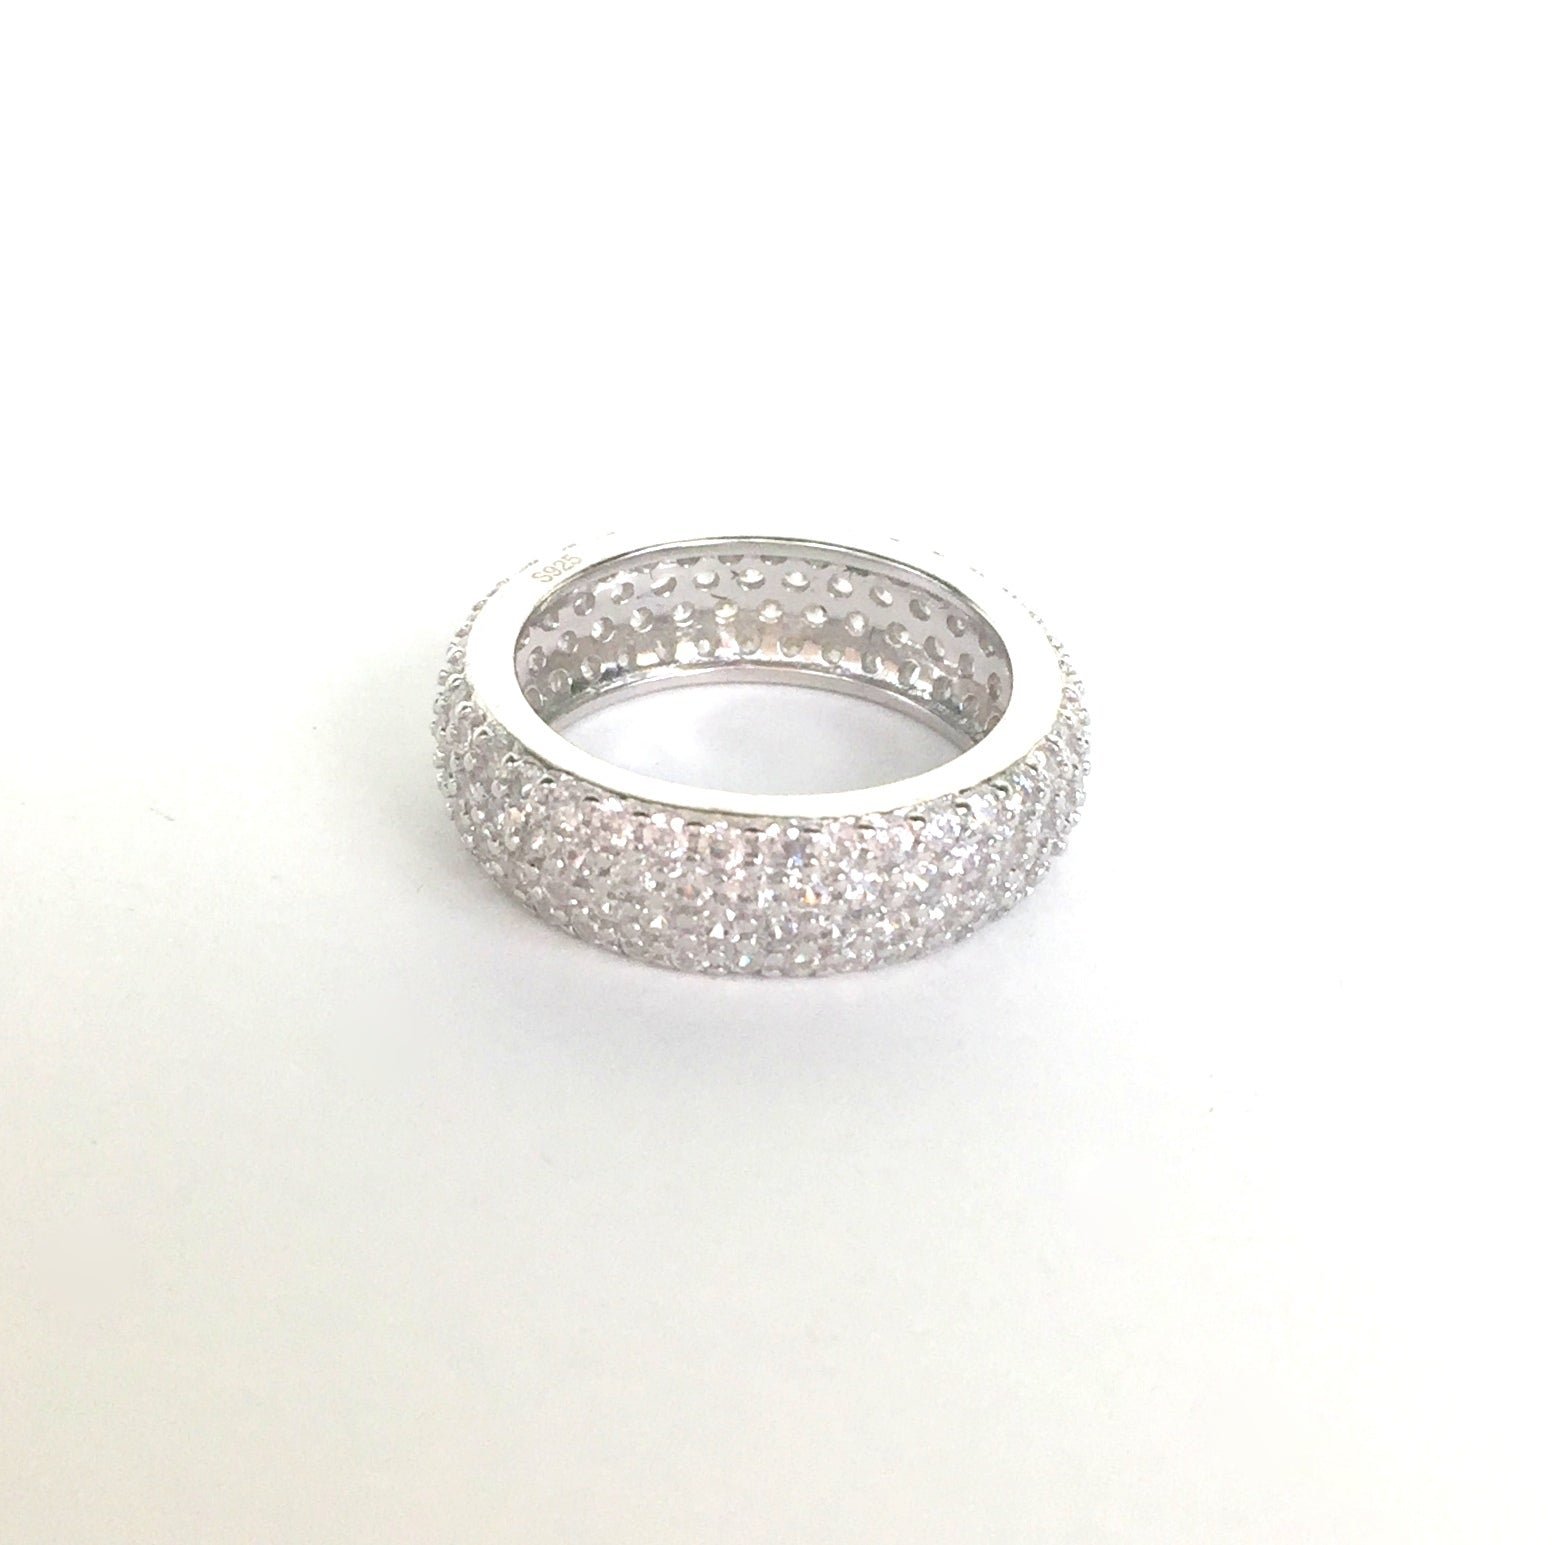 SPARKLING BAND STERLING SILVER RING